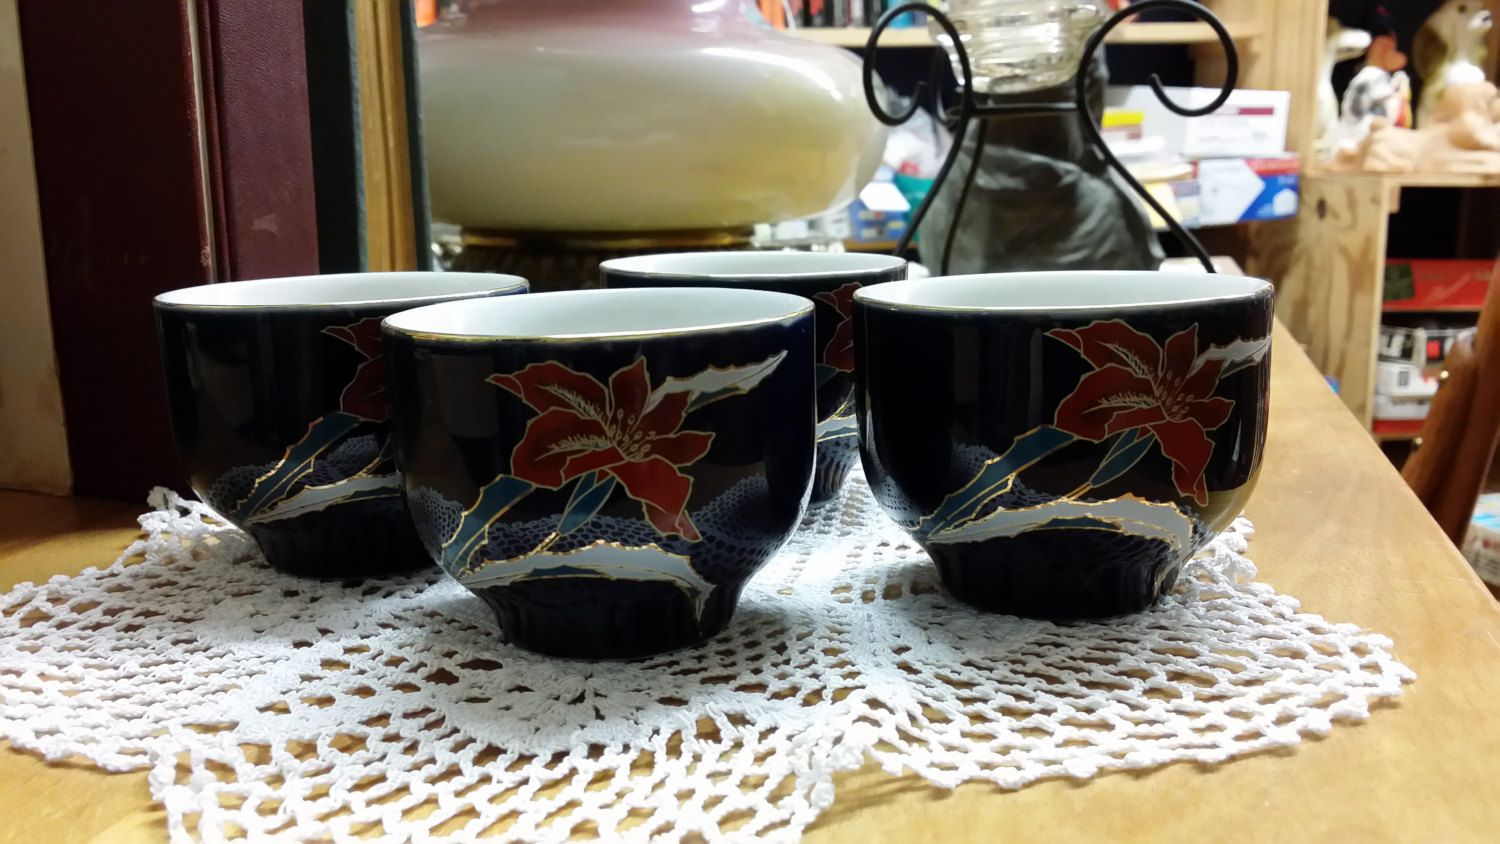 Shaddy Mino Japan Vintage Tea/Sake Cups Set of Four by BlingAndBlueJeans on Etsy